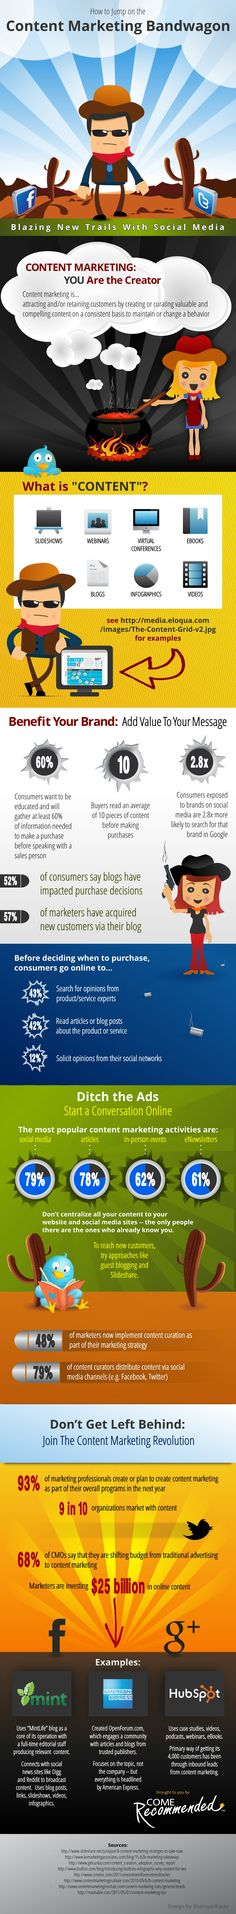 [Infographic] How to Jump on the Content Marketing Bandwagon | Content Strategy Hub